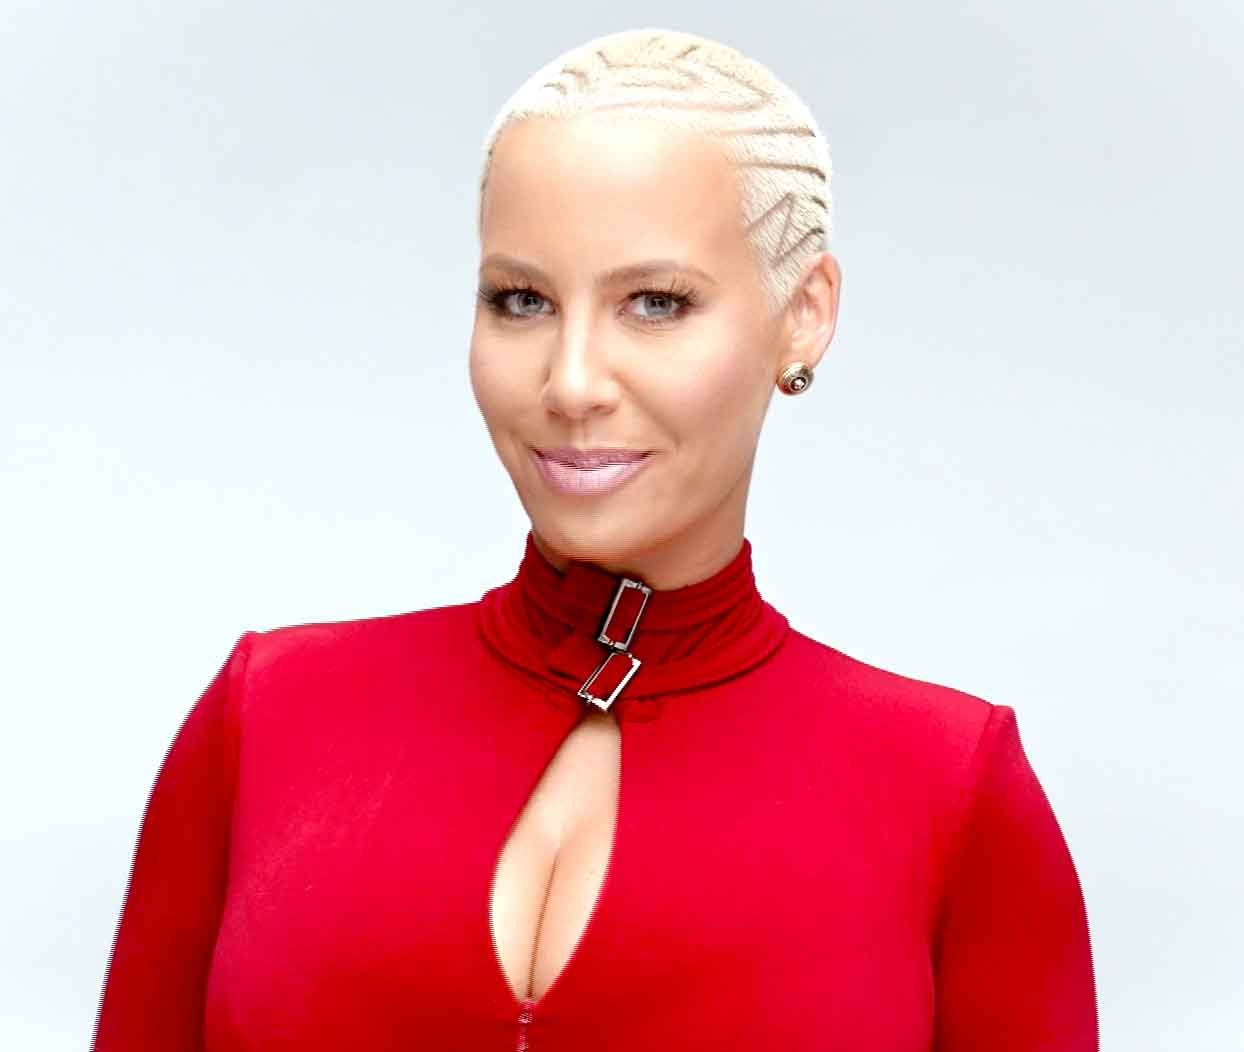 Amber Rose nudes (71 photos), photos Paparazzi, Instagram, see through 2016